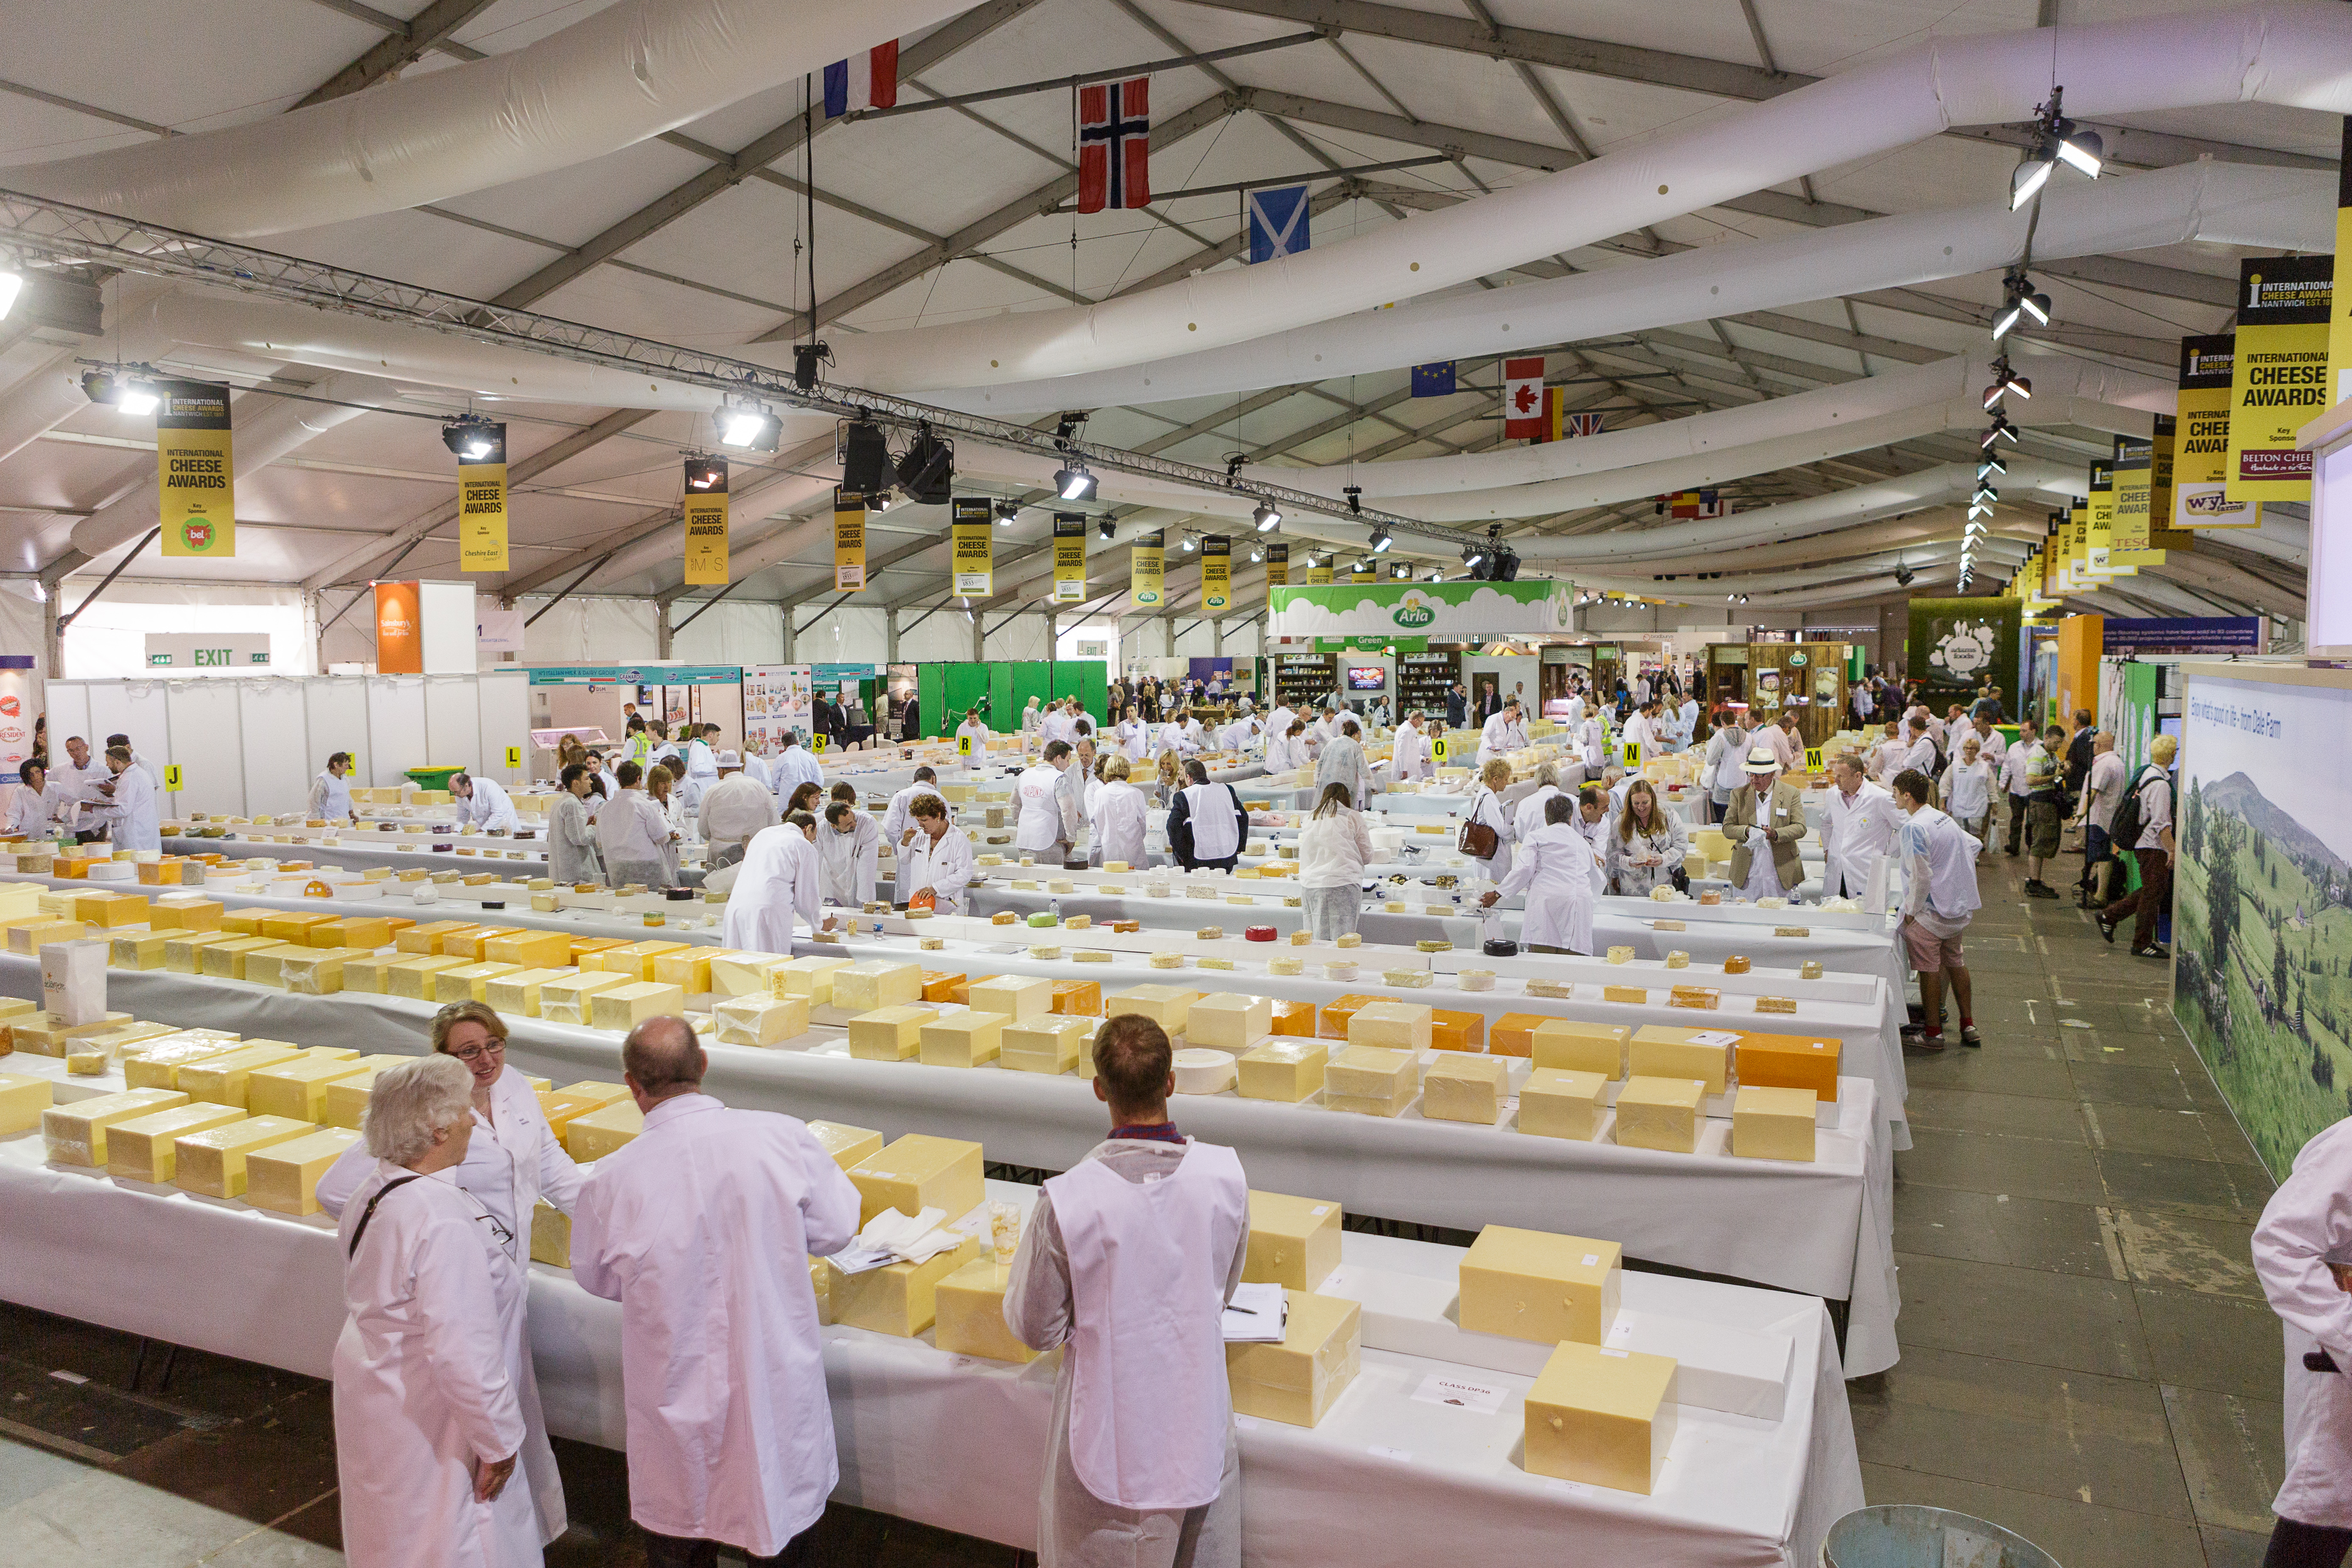 Cheese2014-093